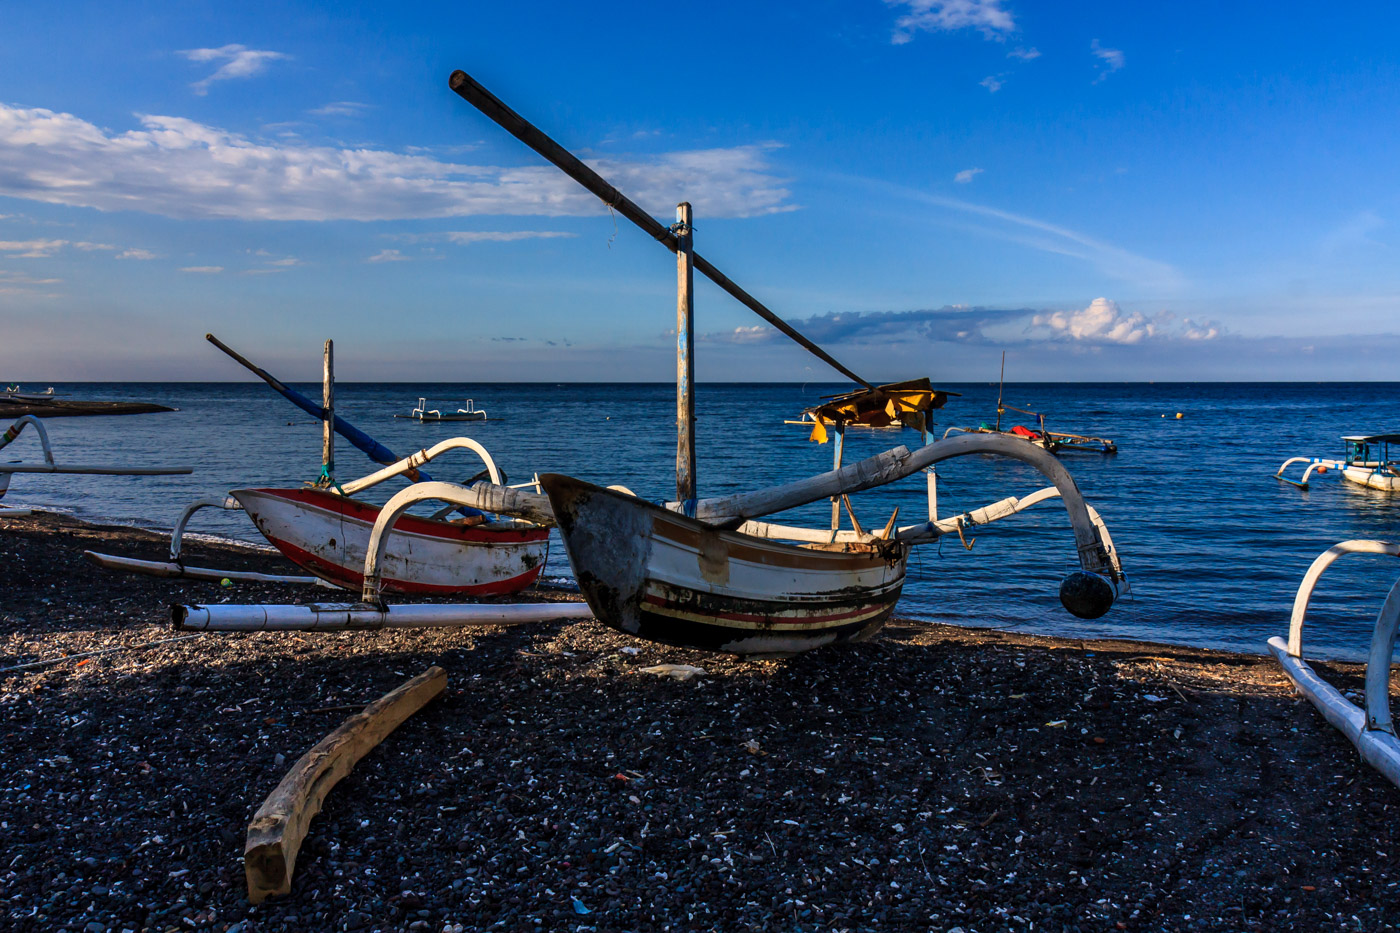 A boat on Amed's beach.